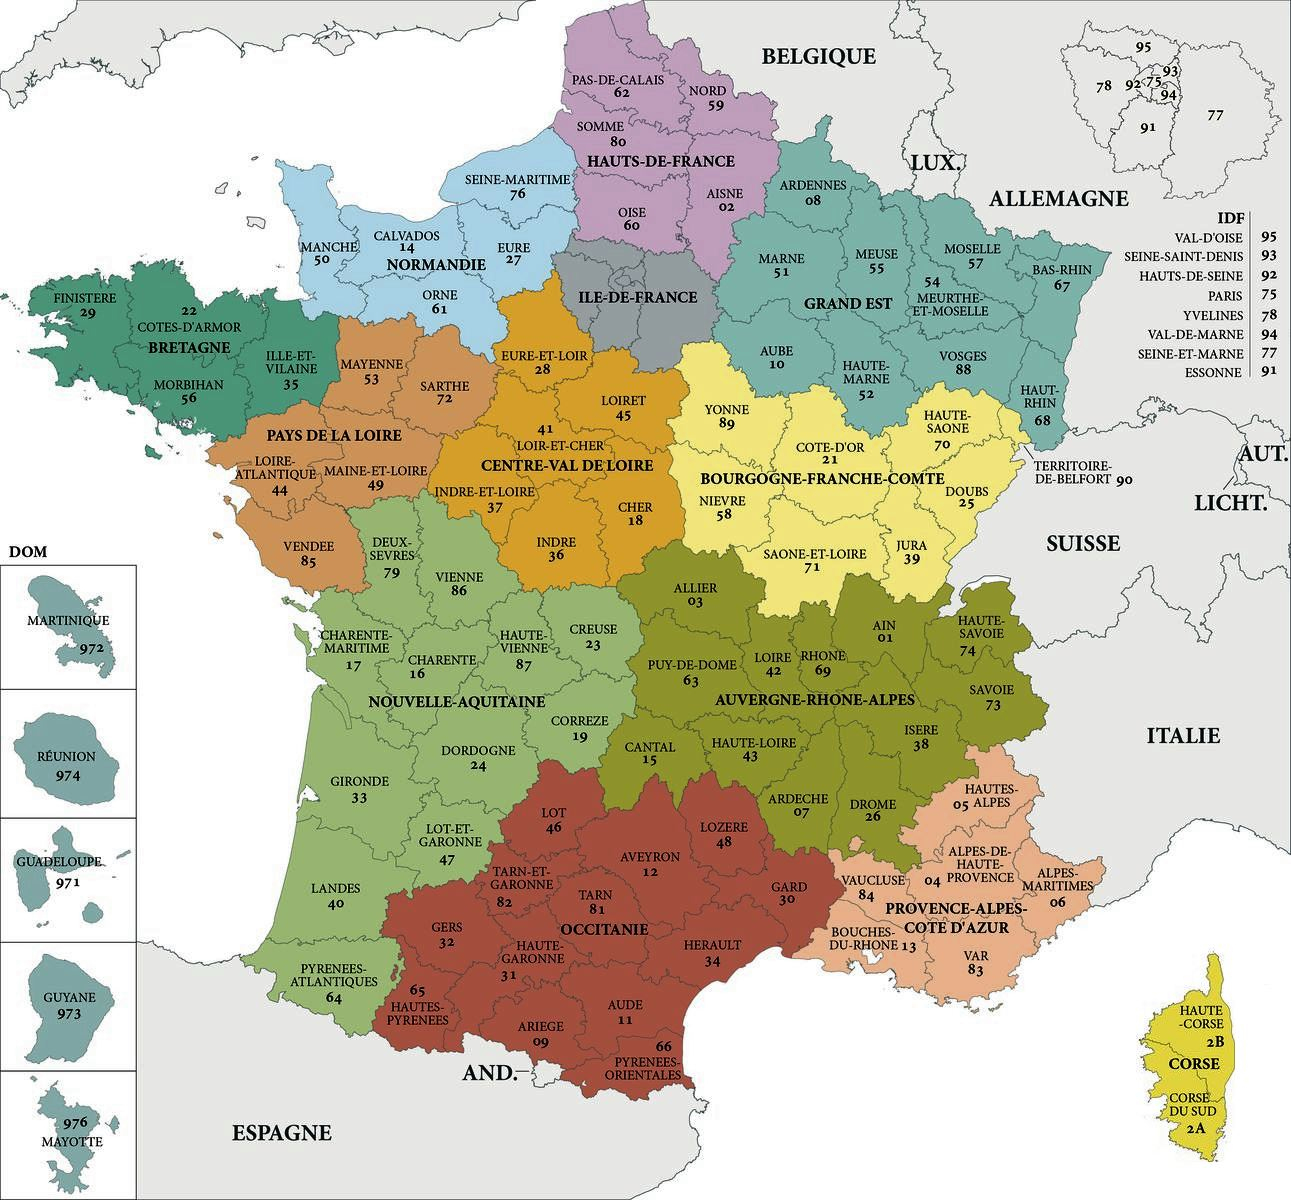 Carte De France Departements : Carte Des Départements De France encequiconcerne Carte De France Des Départements À Imprimer